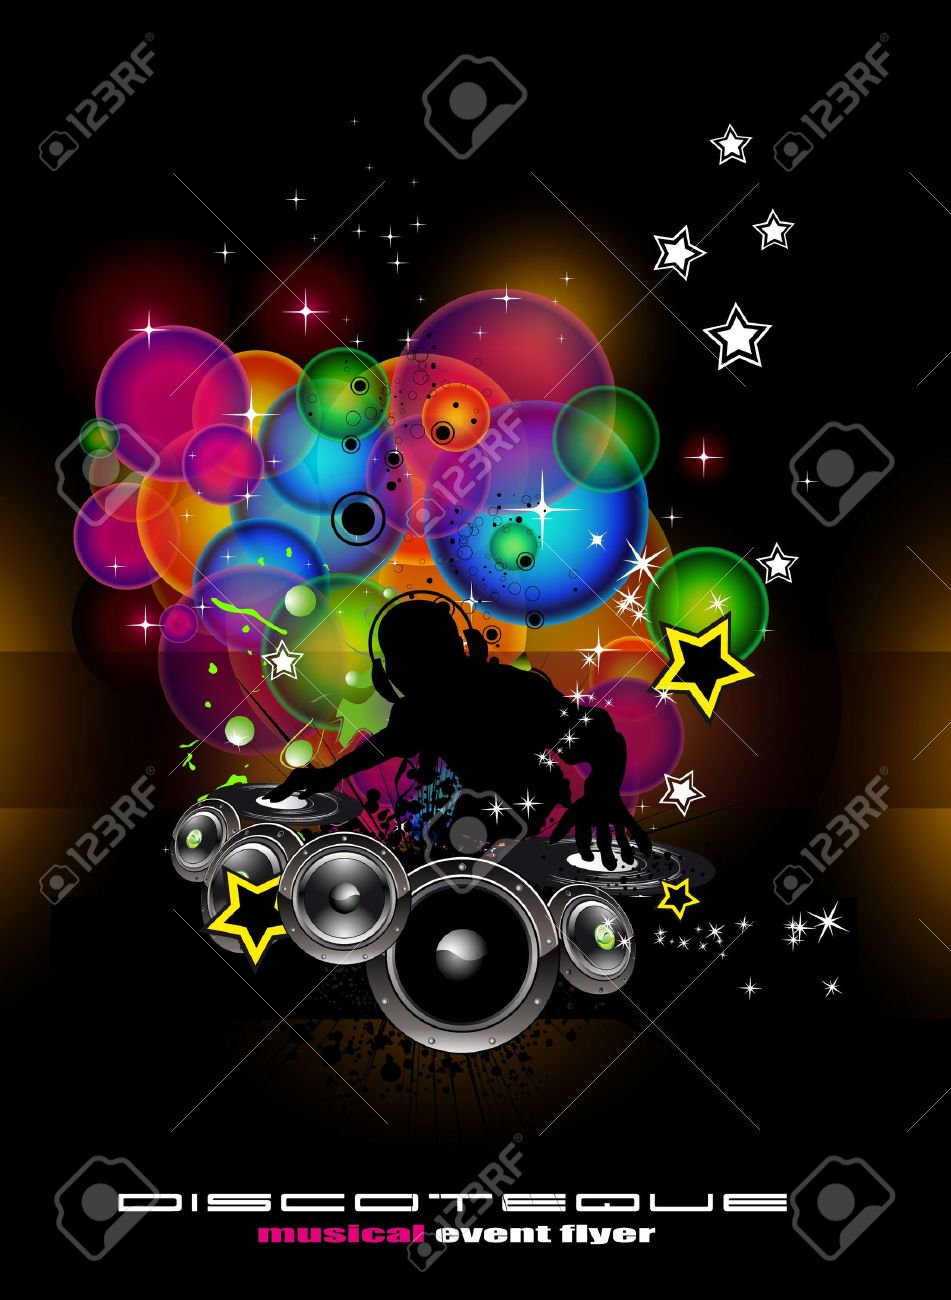 Abstract Light Music Event Background With Dj Shape Royalty Free